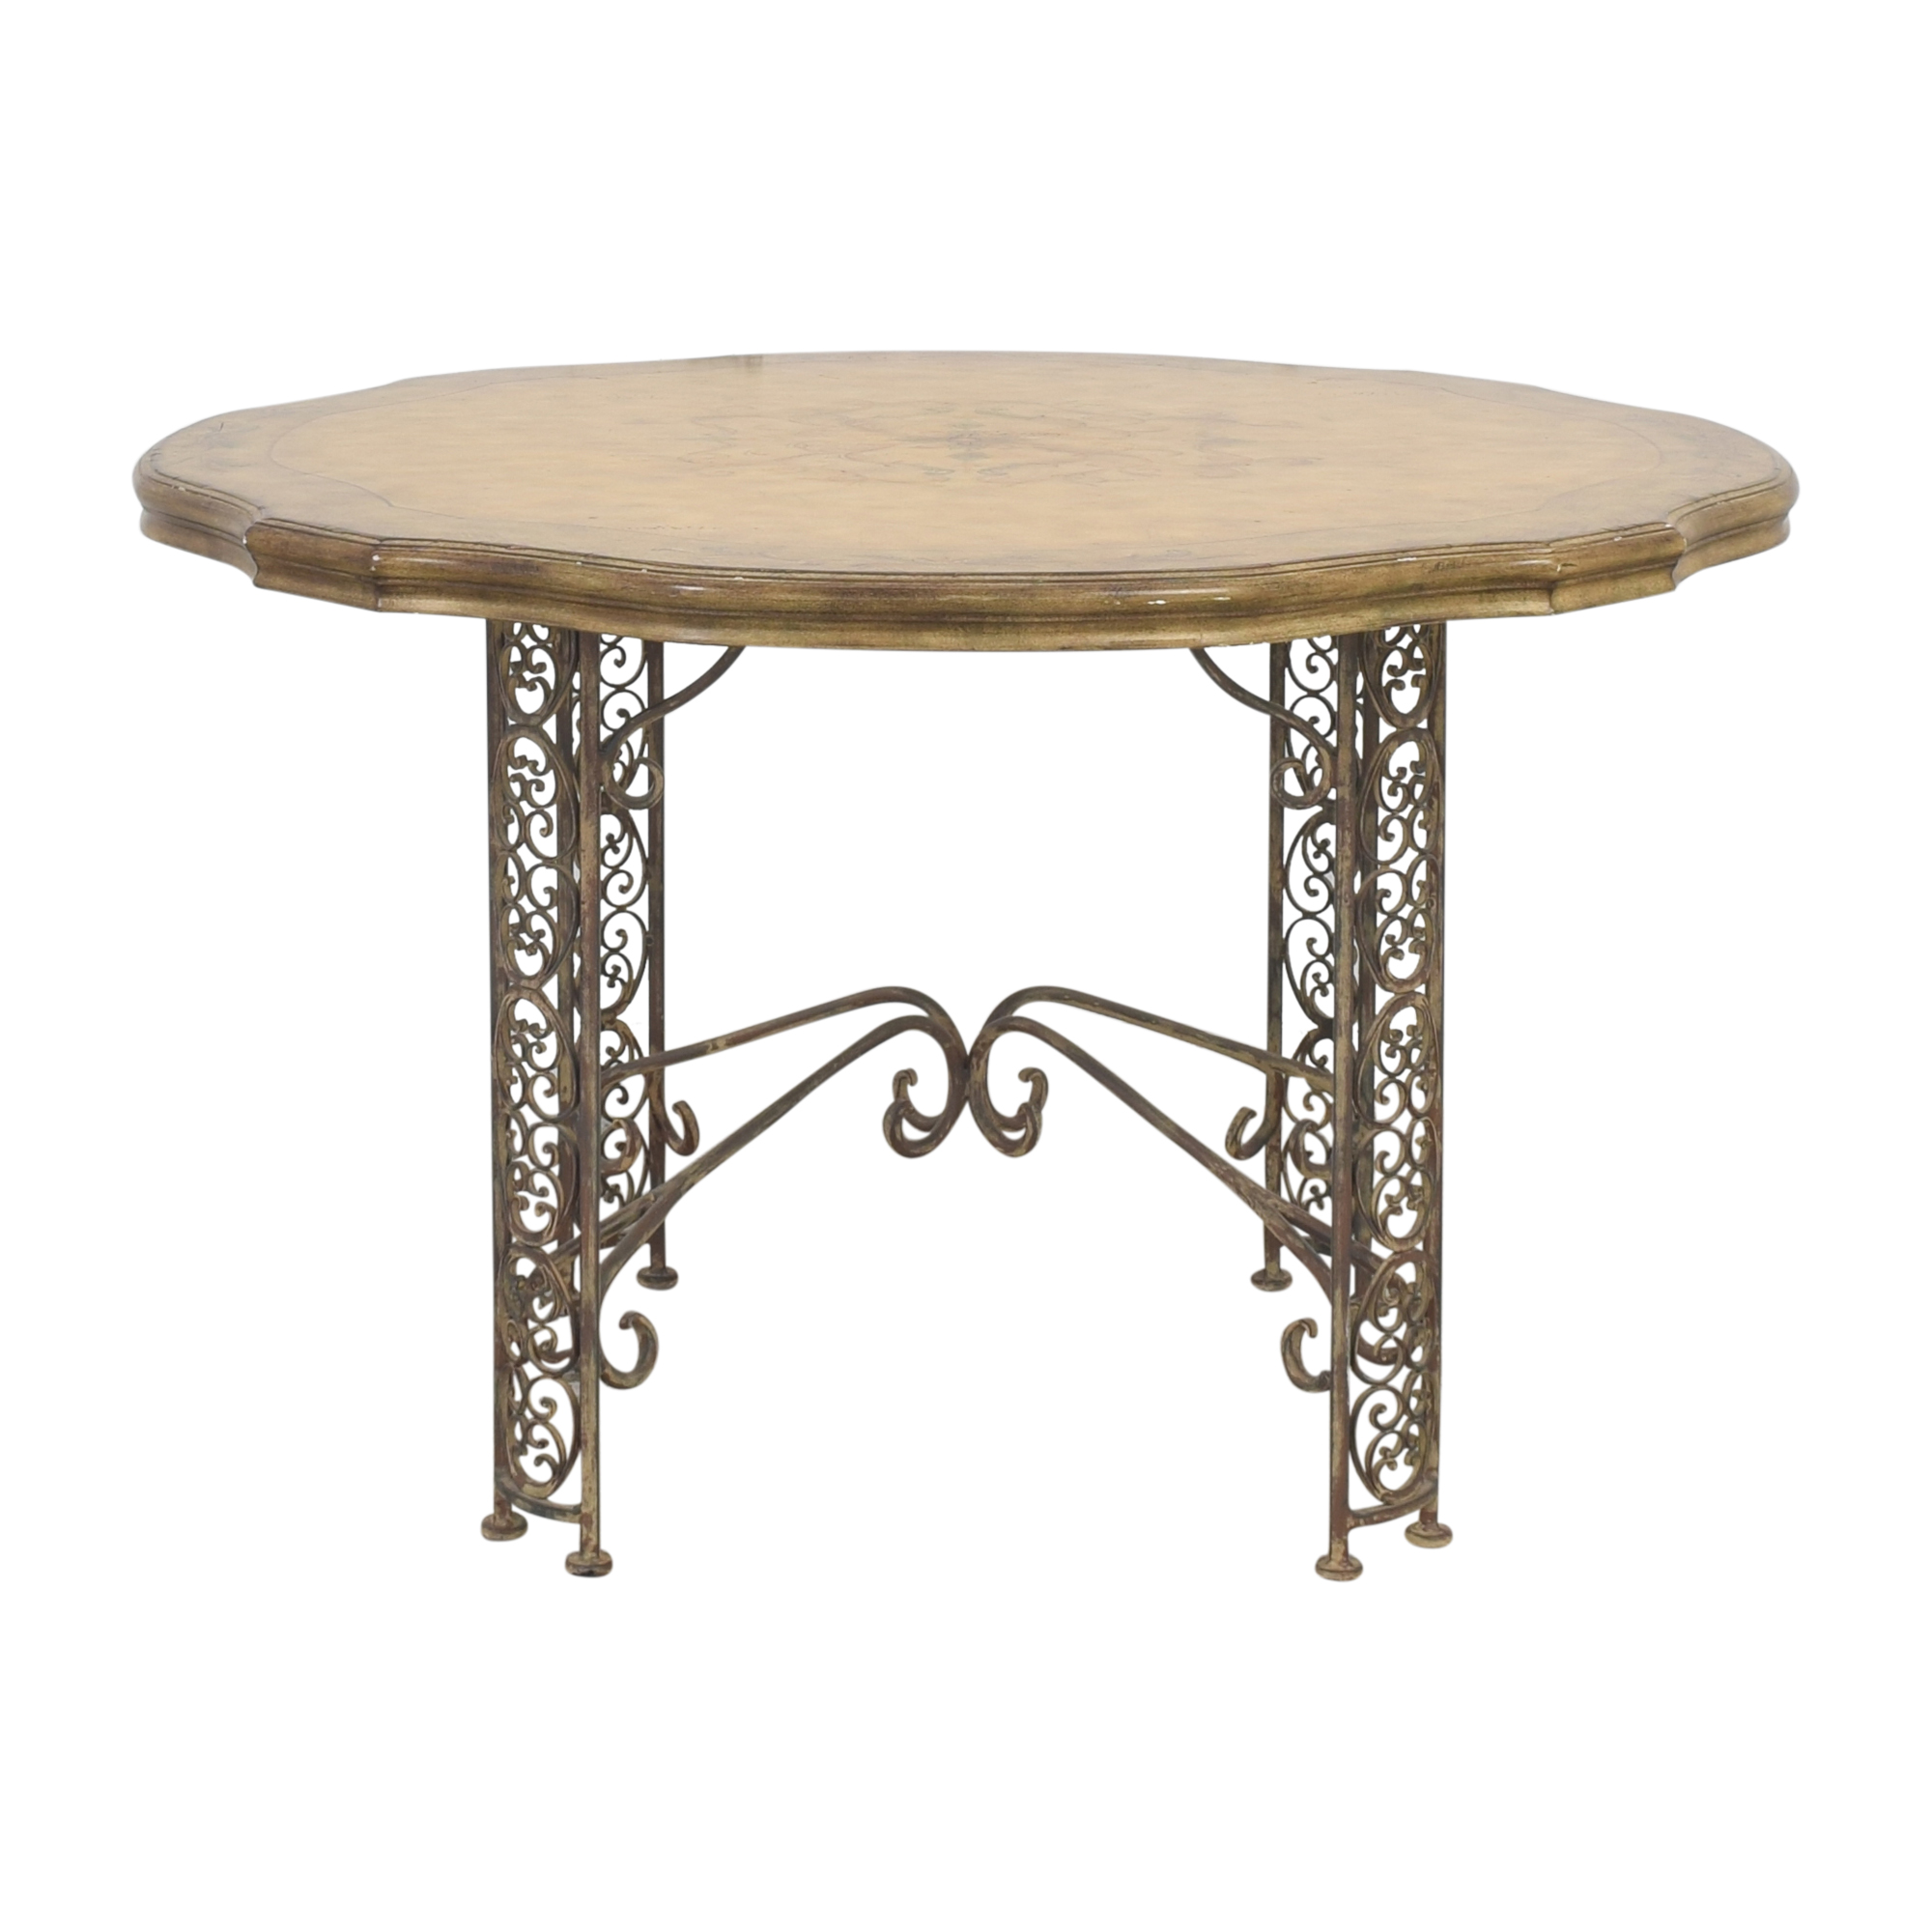 Domain Decorative Round Dining Table / Tables